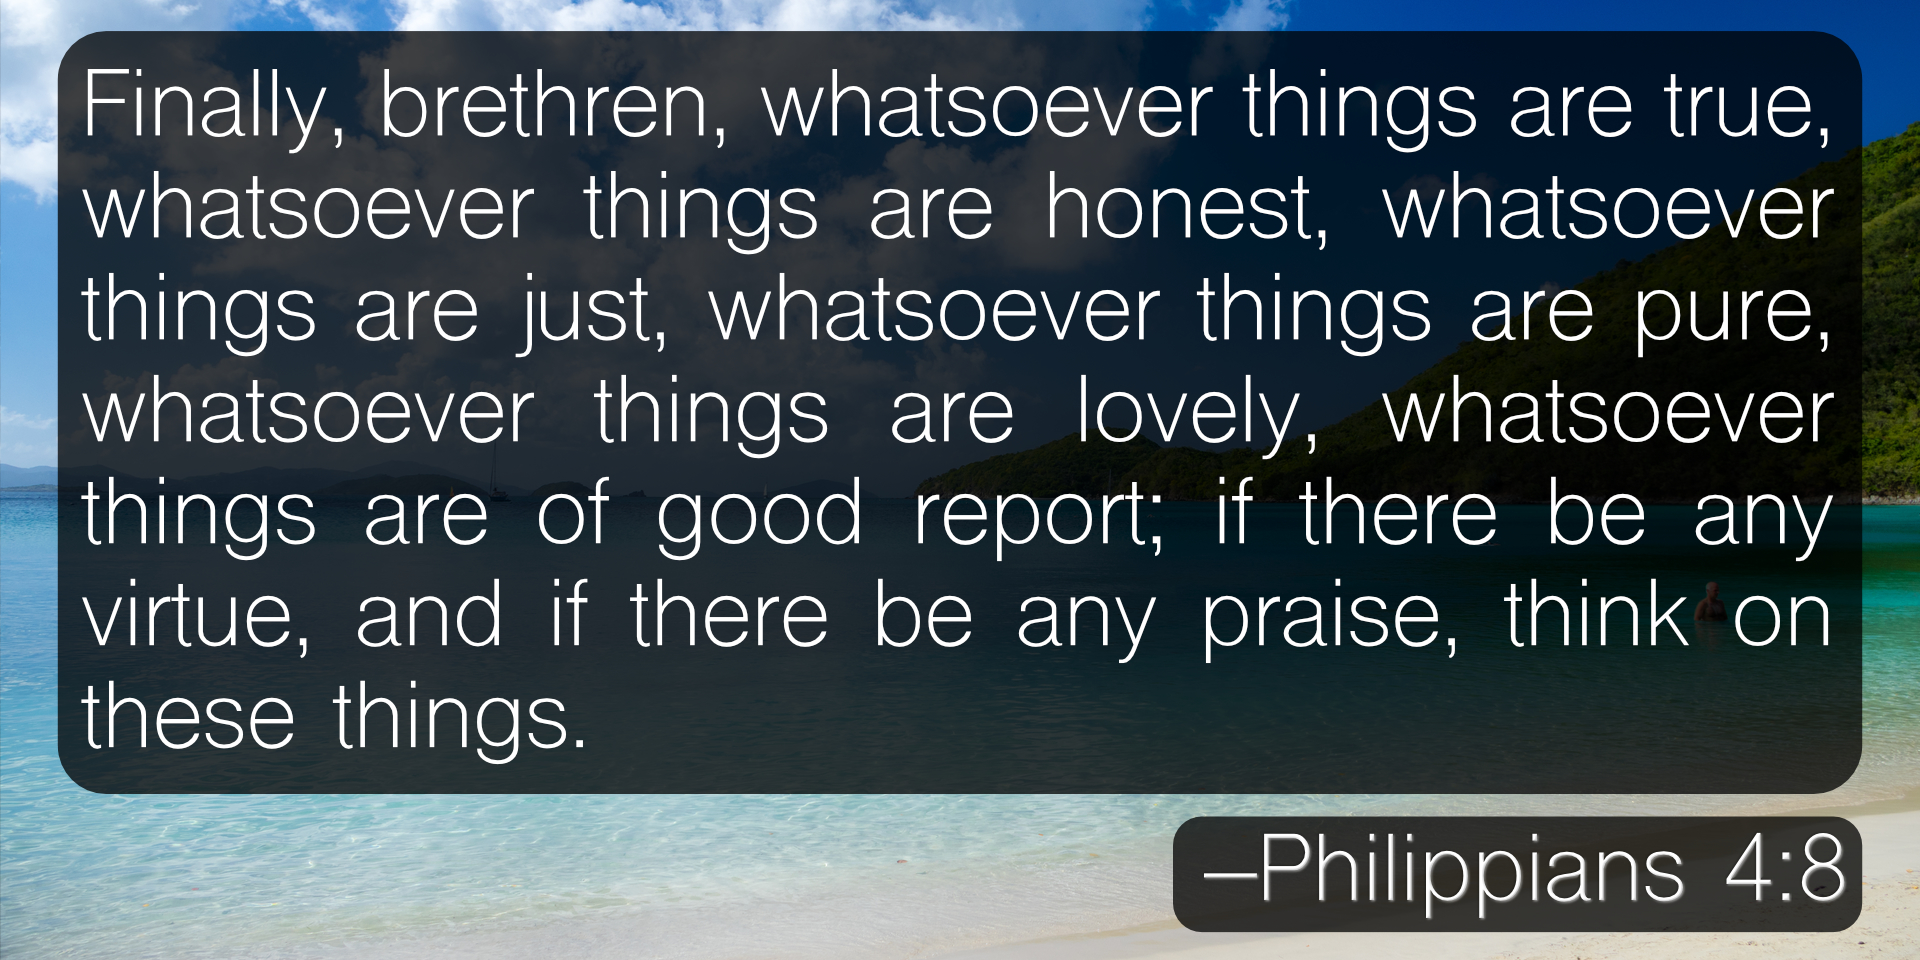 Finally, brethren, whatsoever things are true, whatsoever things are honest, whatsoever things are just, whatsoever things are pure, whatsoever things are lovely, whatsoever things are of good report; if there be any virtue, and if there be any praise, think on these things. –Philippians 4:8